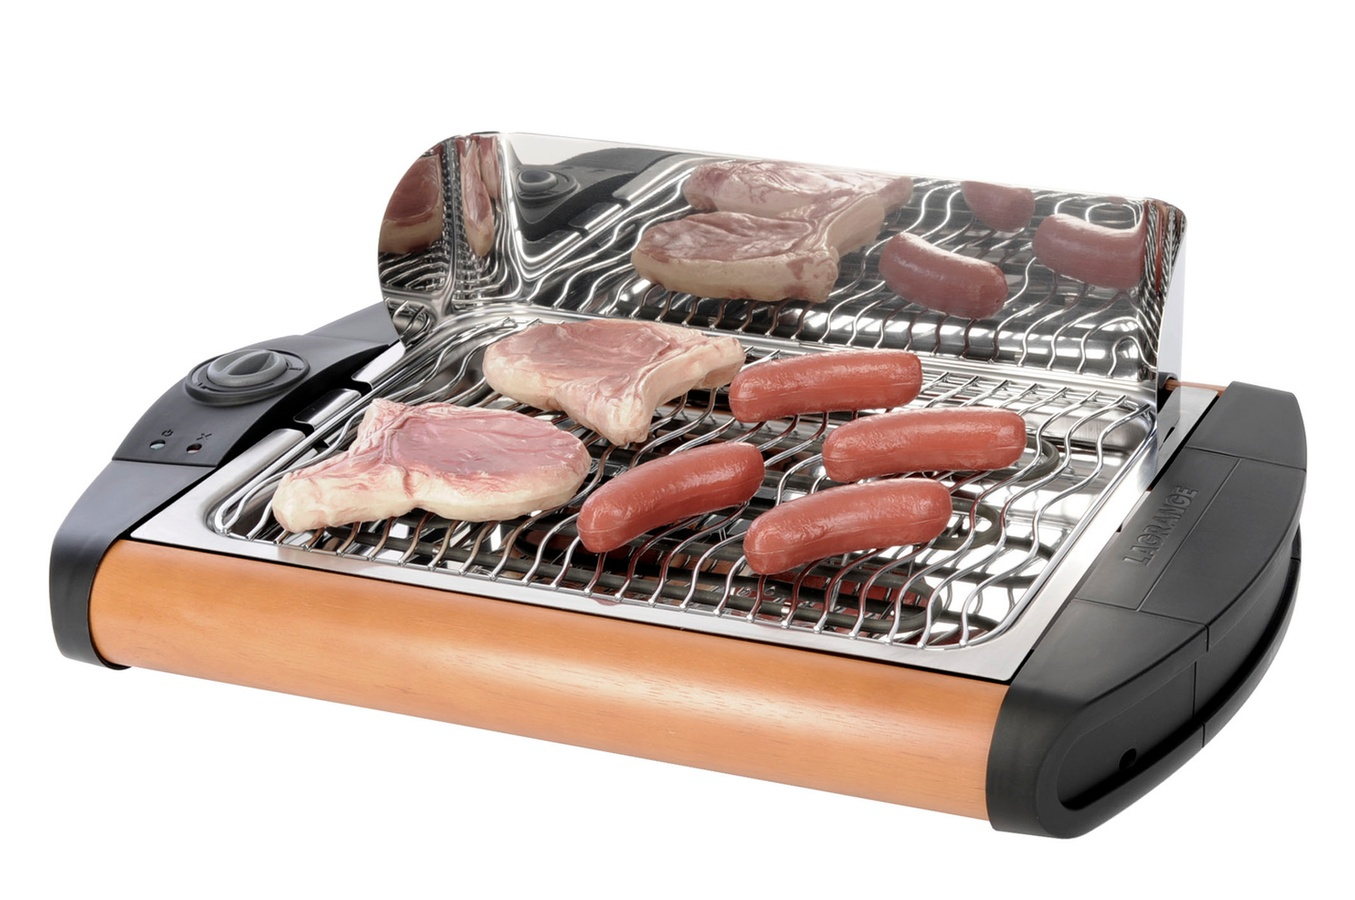 319001 BARBECUEGRILLCONCEPTTABLE